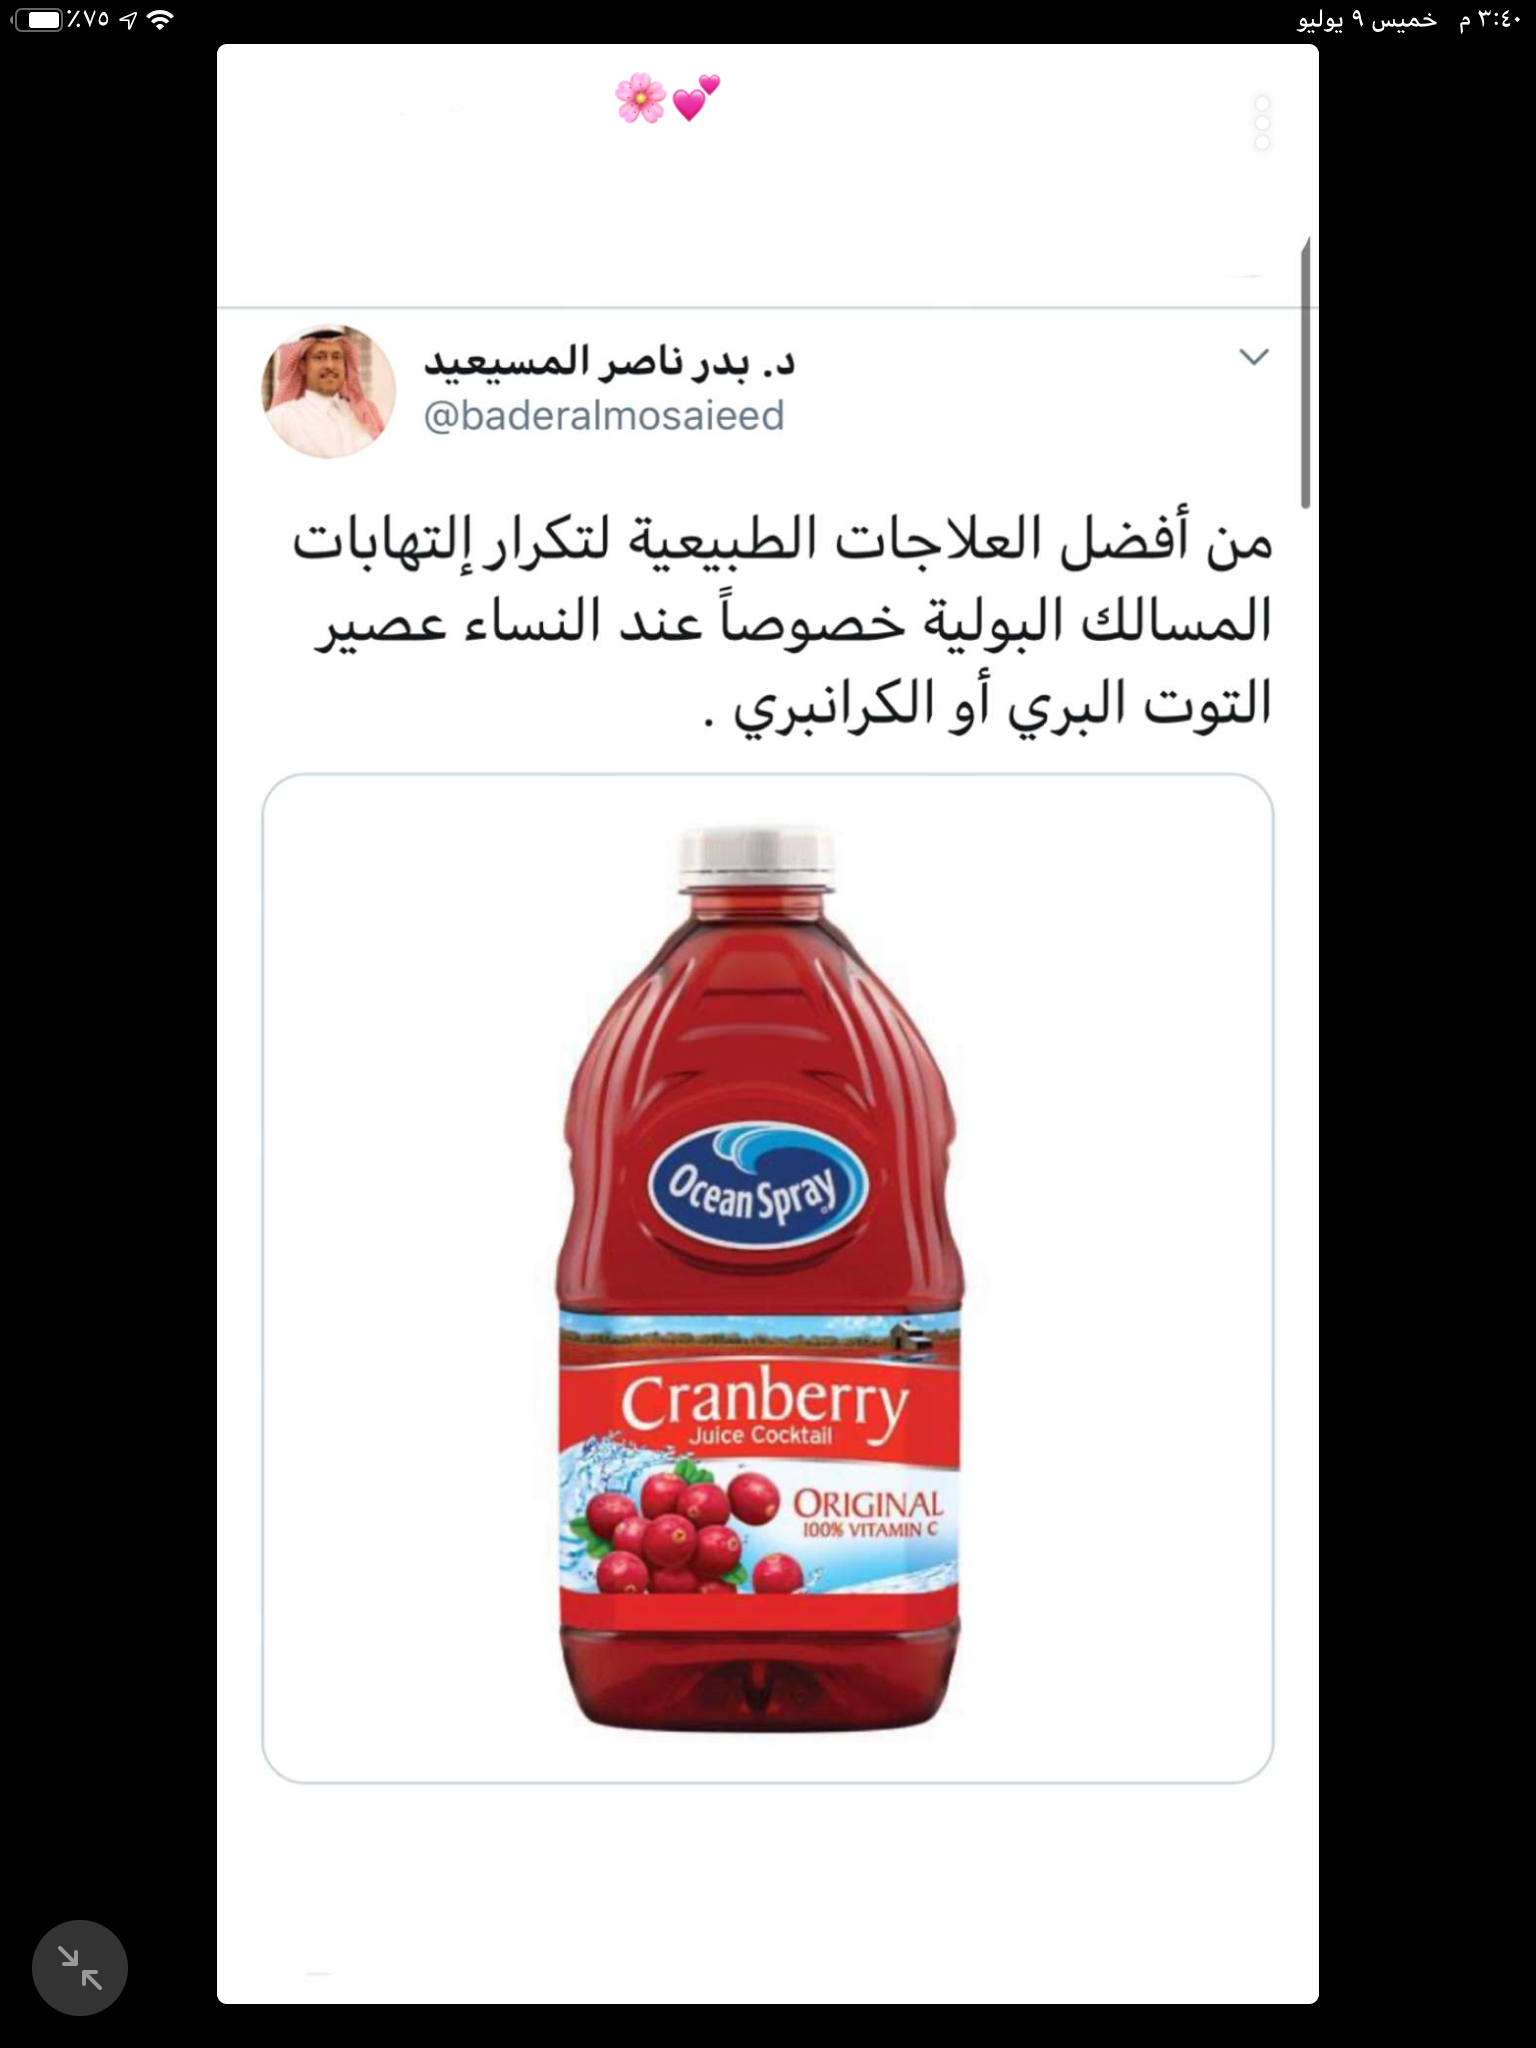 Pin By Raghd On عنايه امي Cranberry Juice Cocktail Ocean Spray Cranberry Hair Care Recipes